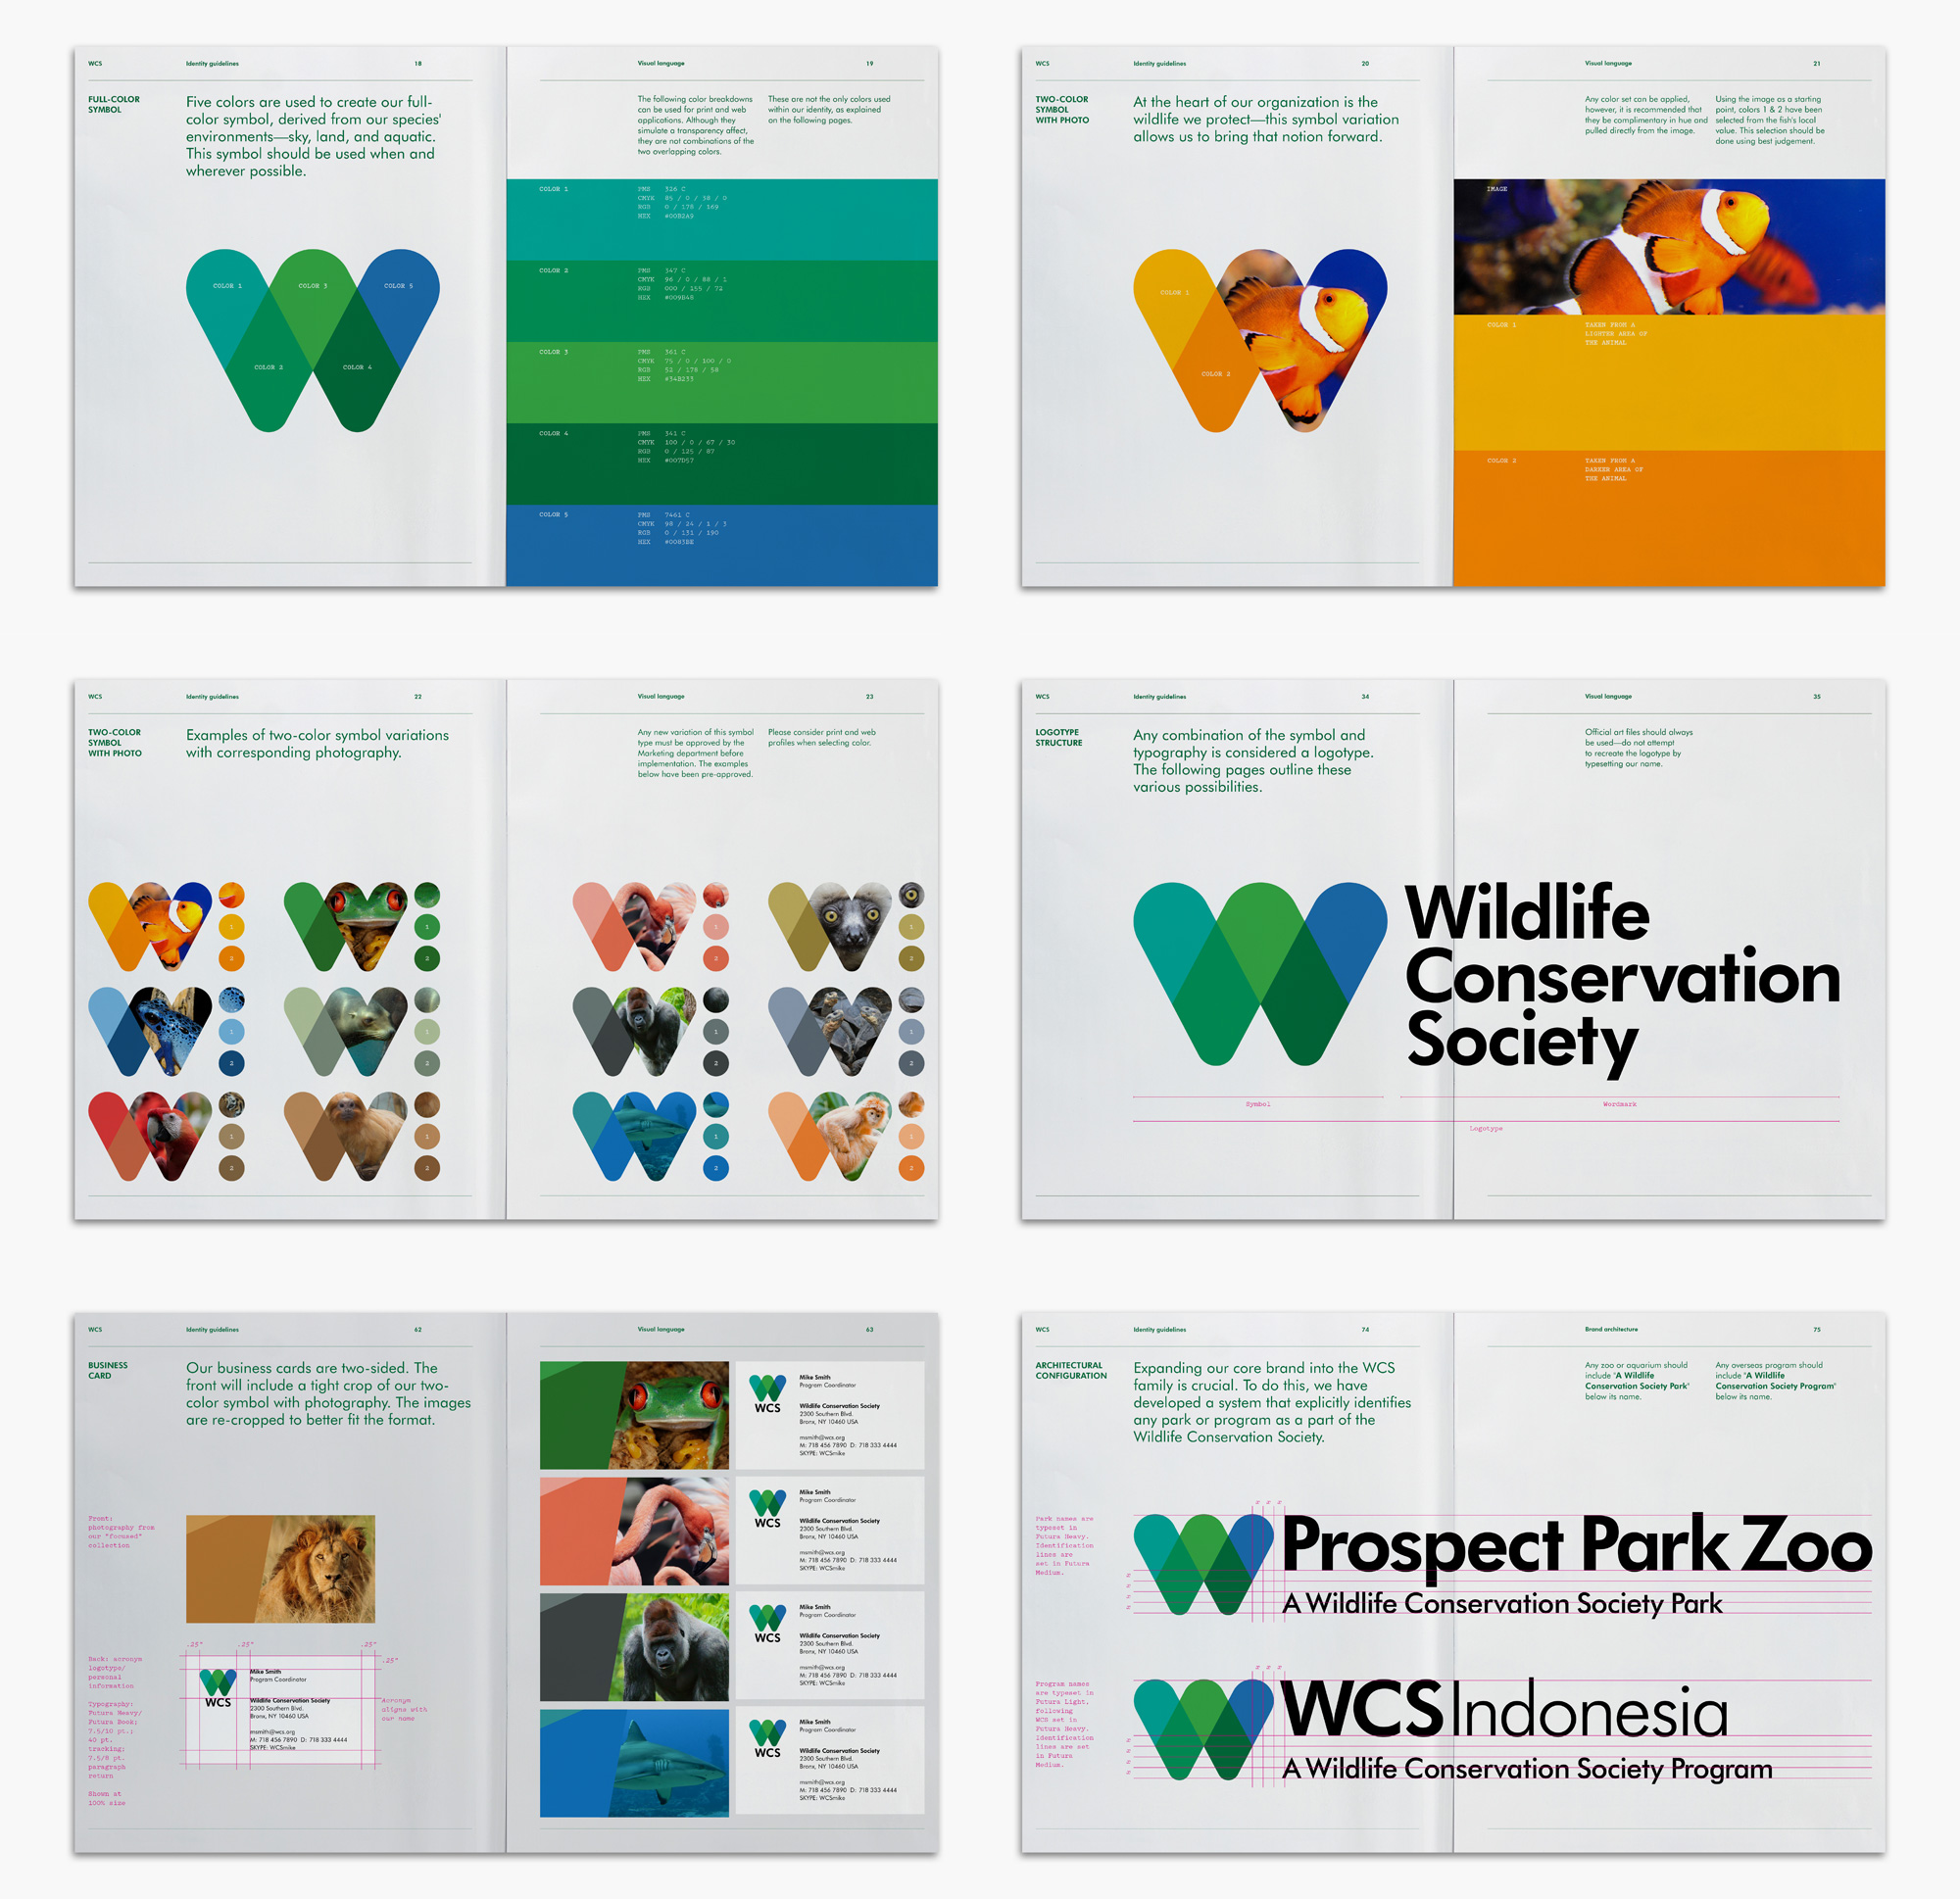 Brand new new logo and identity for wildlife conservation society new logo and identity for wildlife conservation society by pentagram buycottarizona